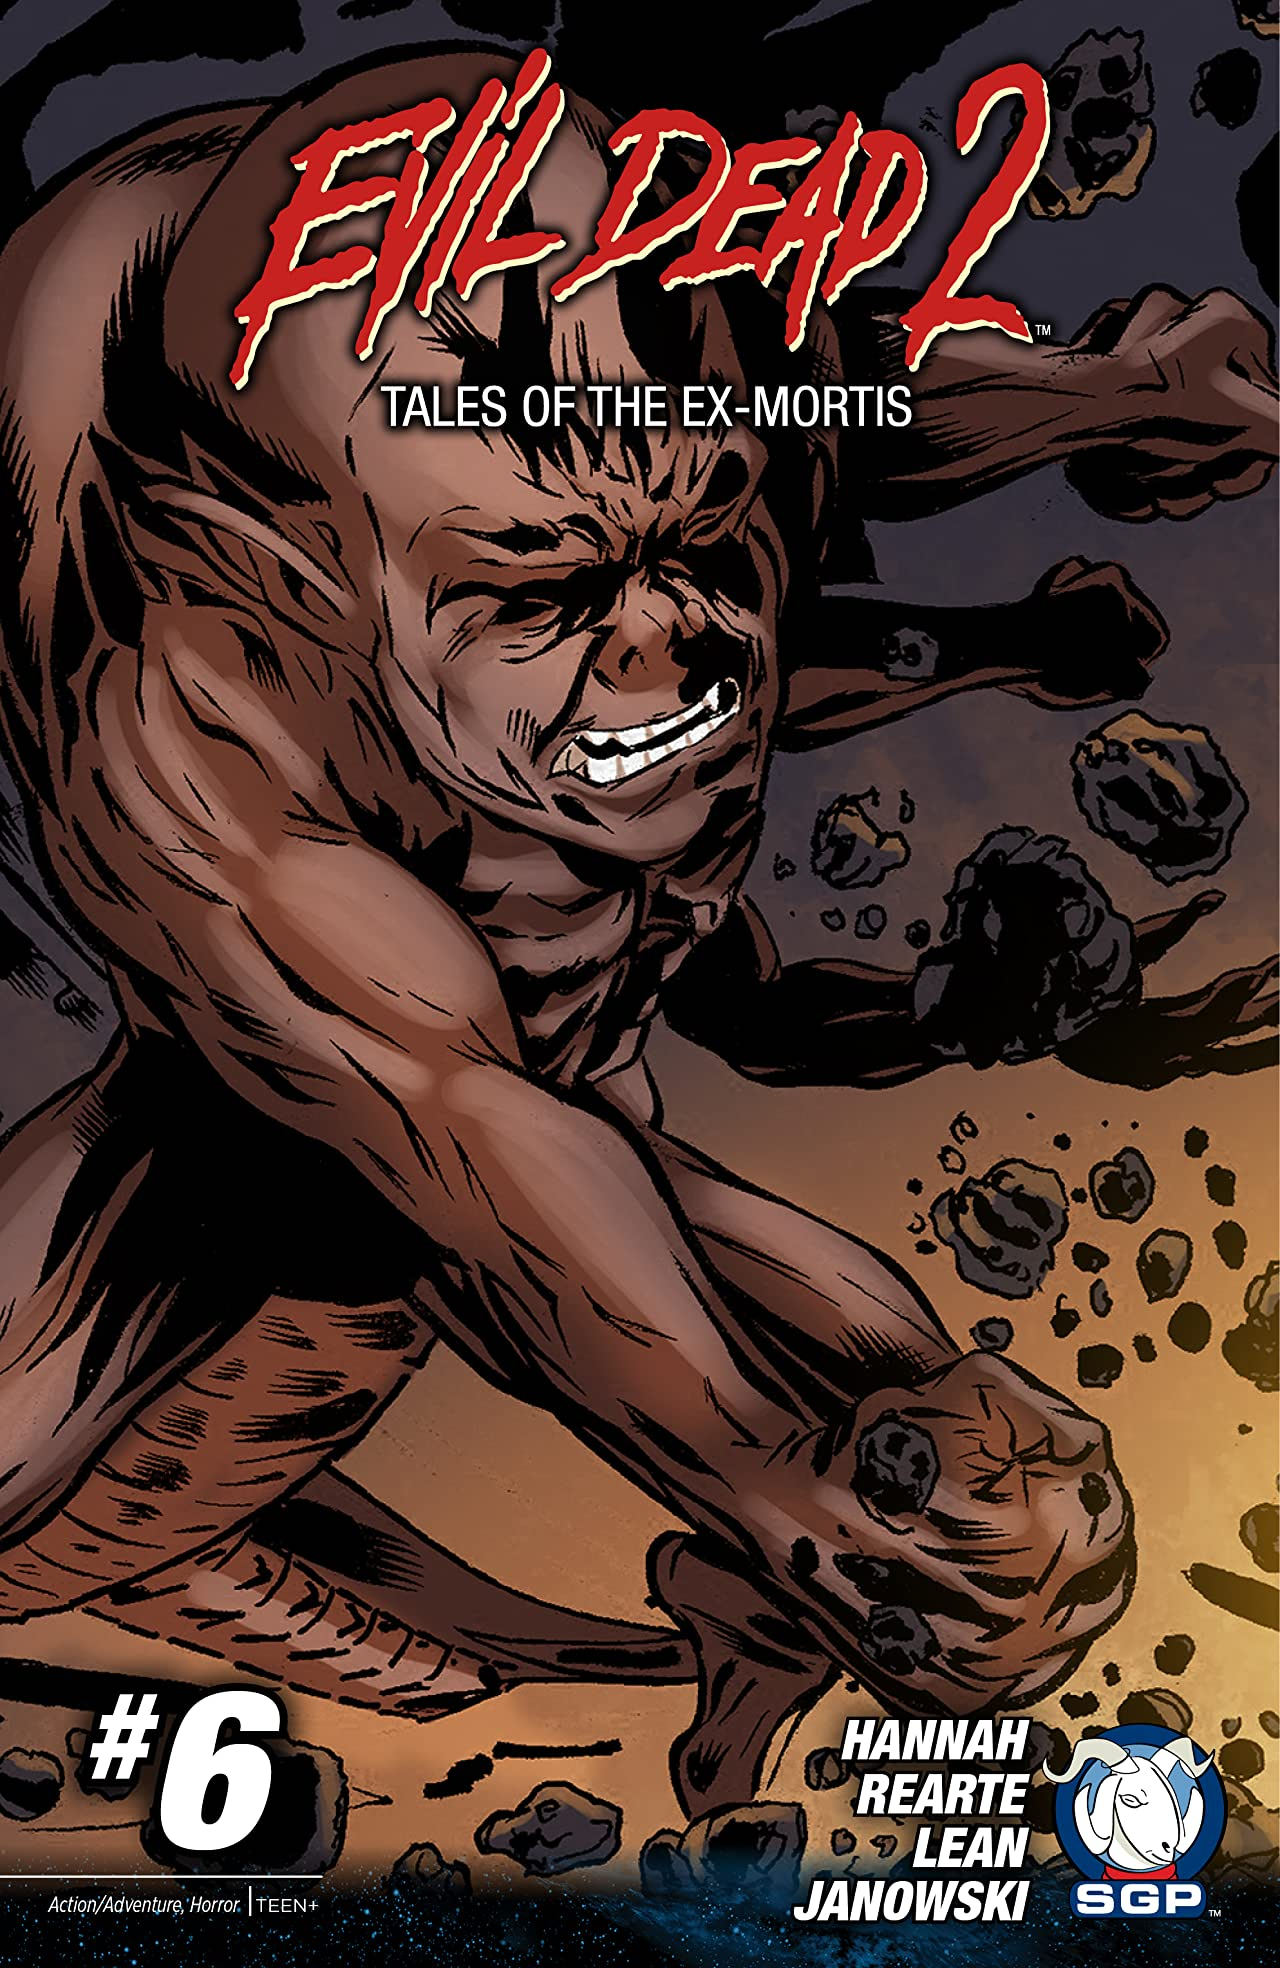 Evil Dead 2: Tales of the Ex-Mortis #6